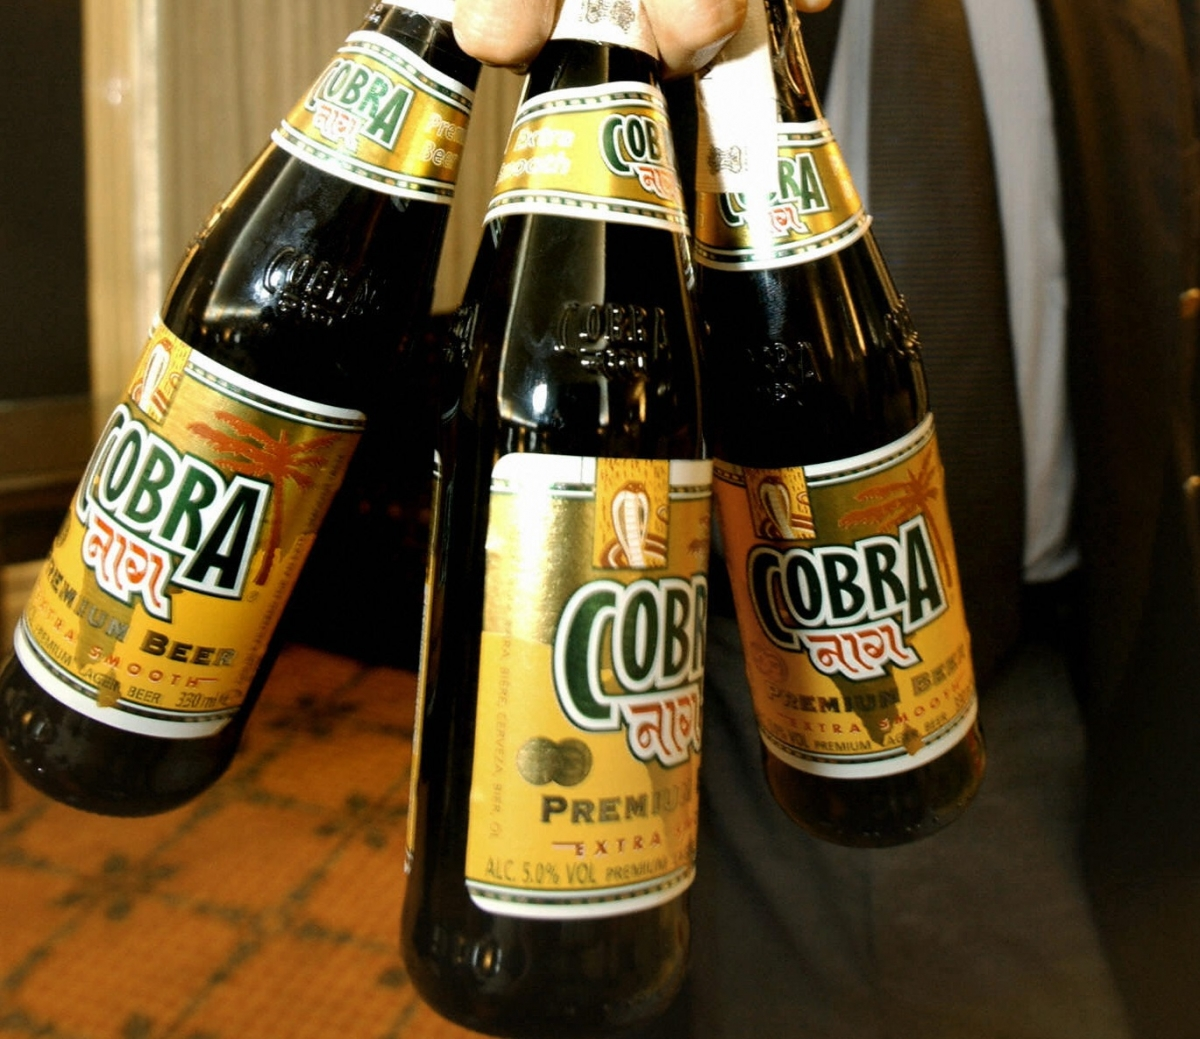 Cobra beer deals